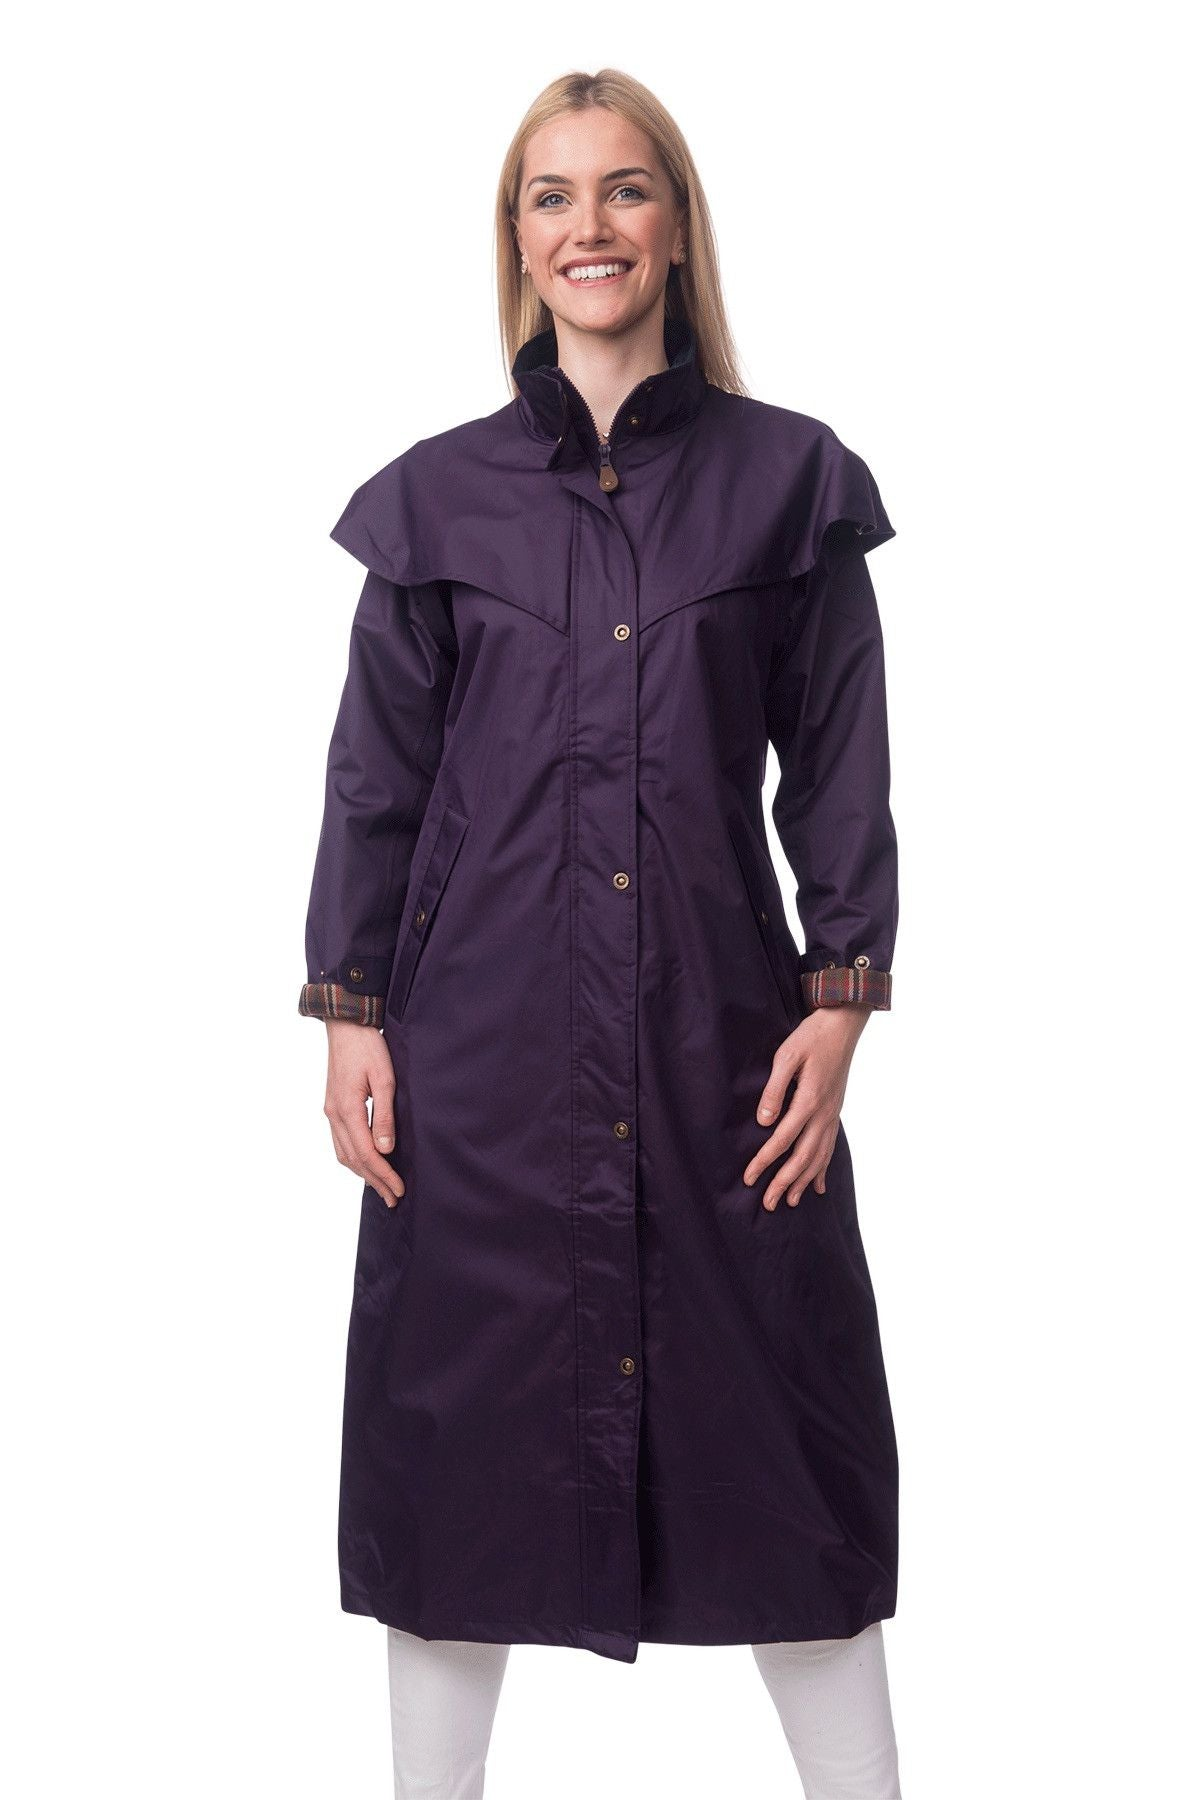 35b4799b15d Target Dry Outback 2 Womens Full Length Rain Coat